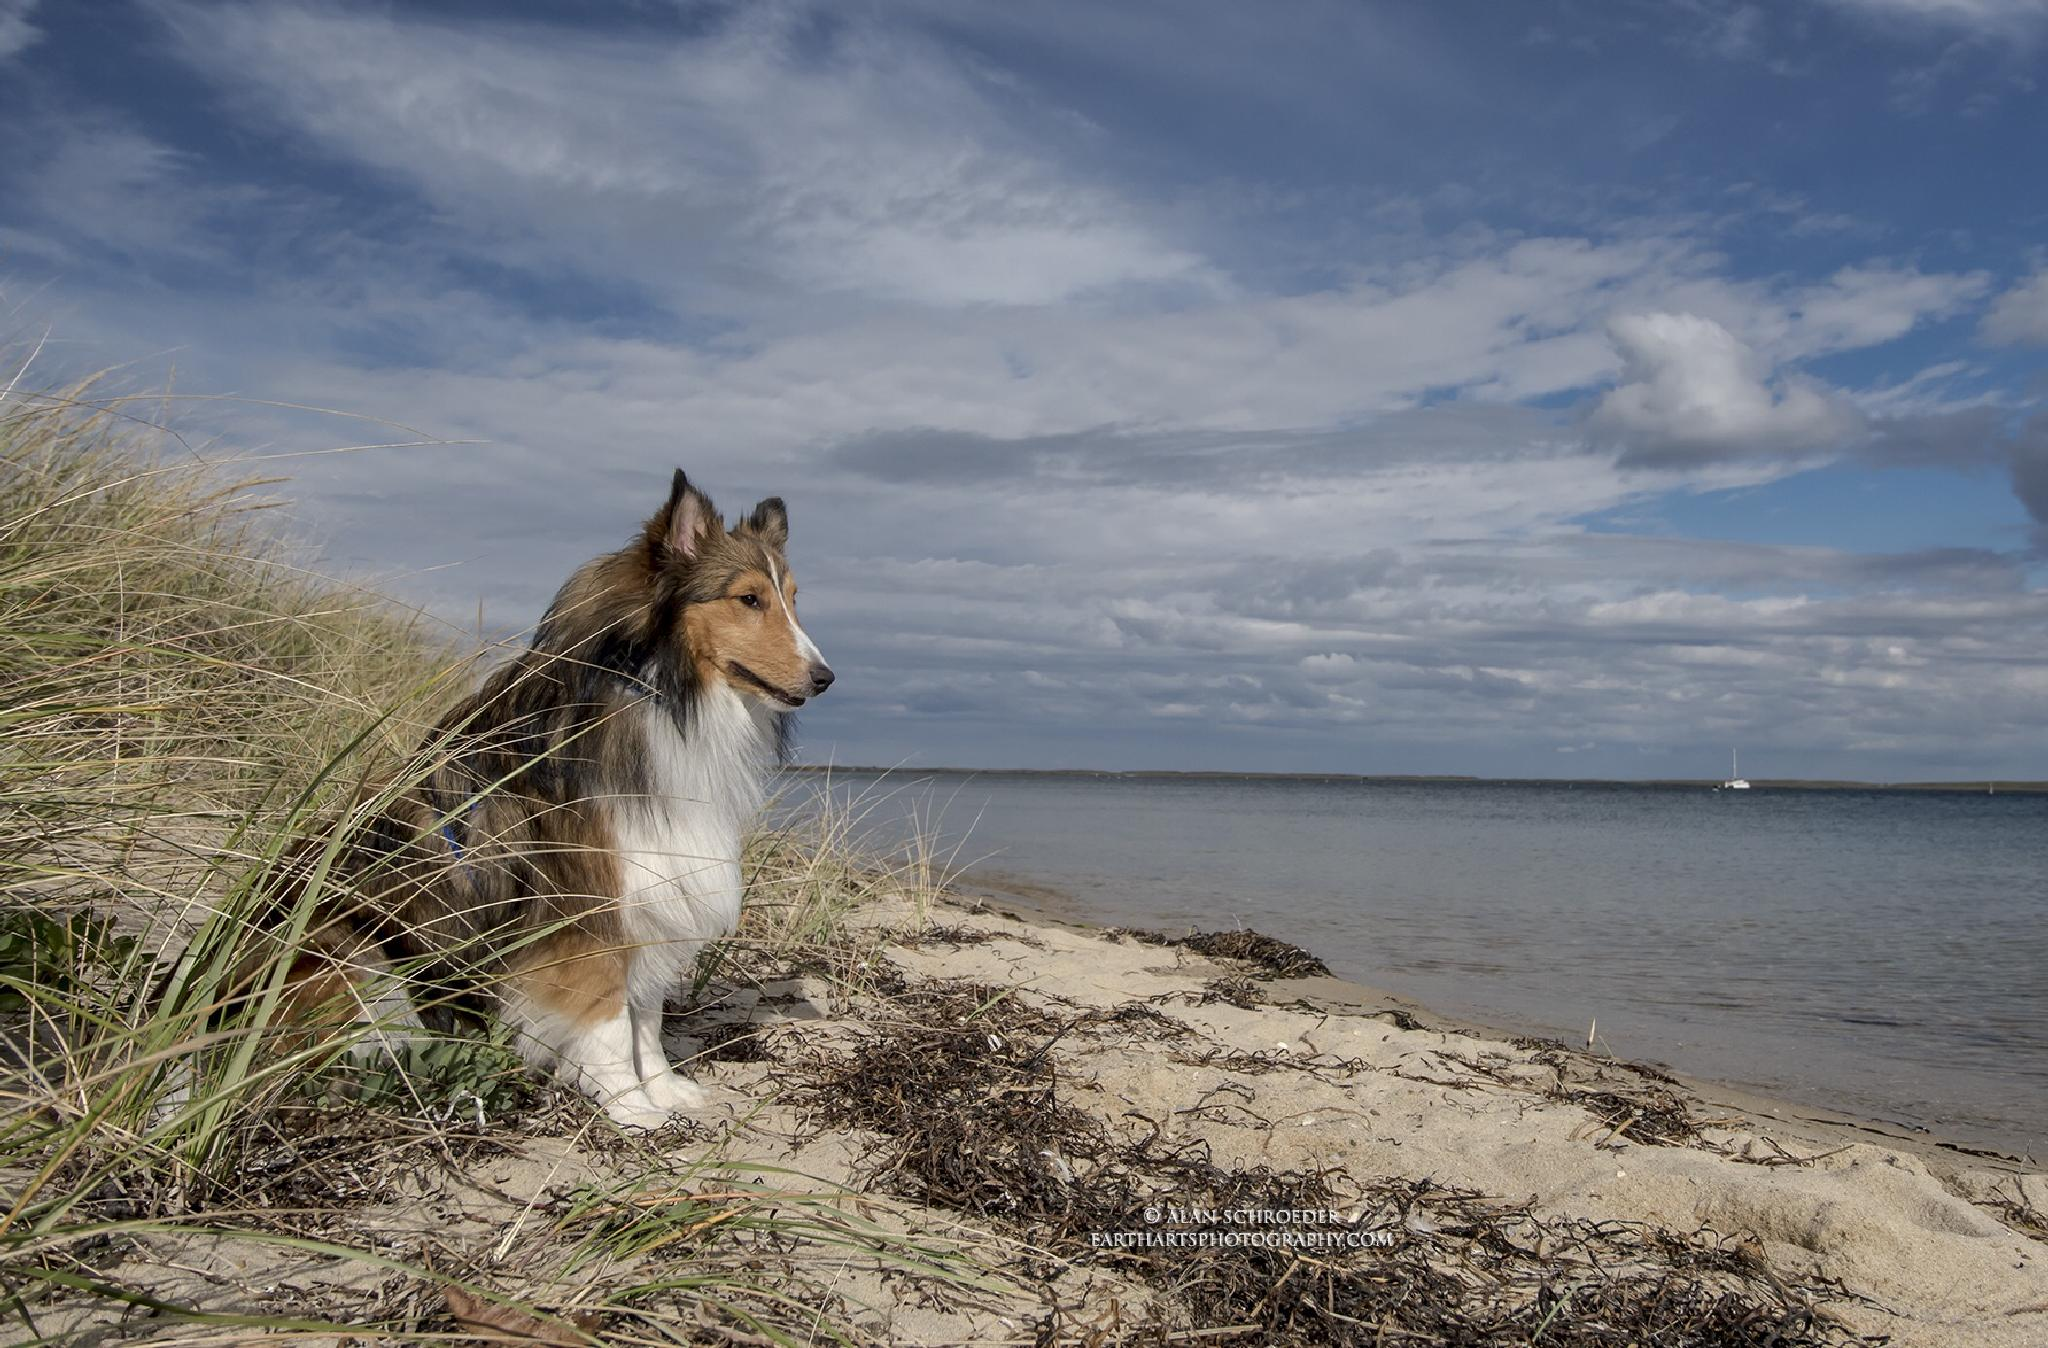 Relaxing at the beach. by Alan Schroeder